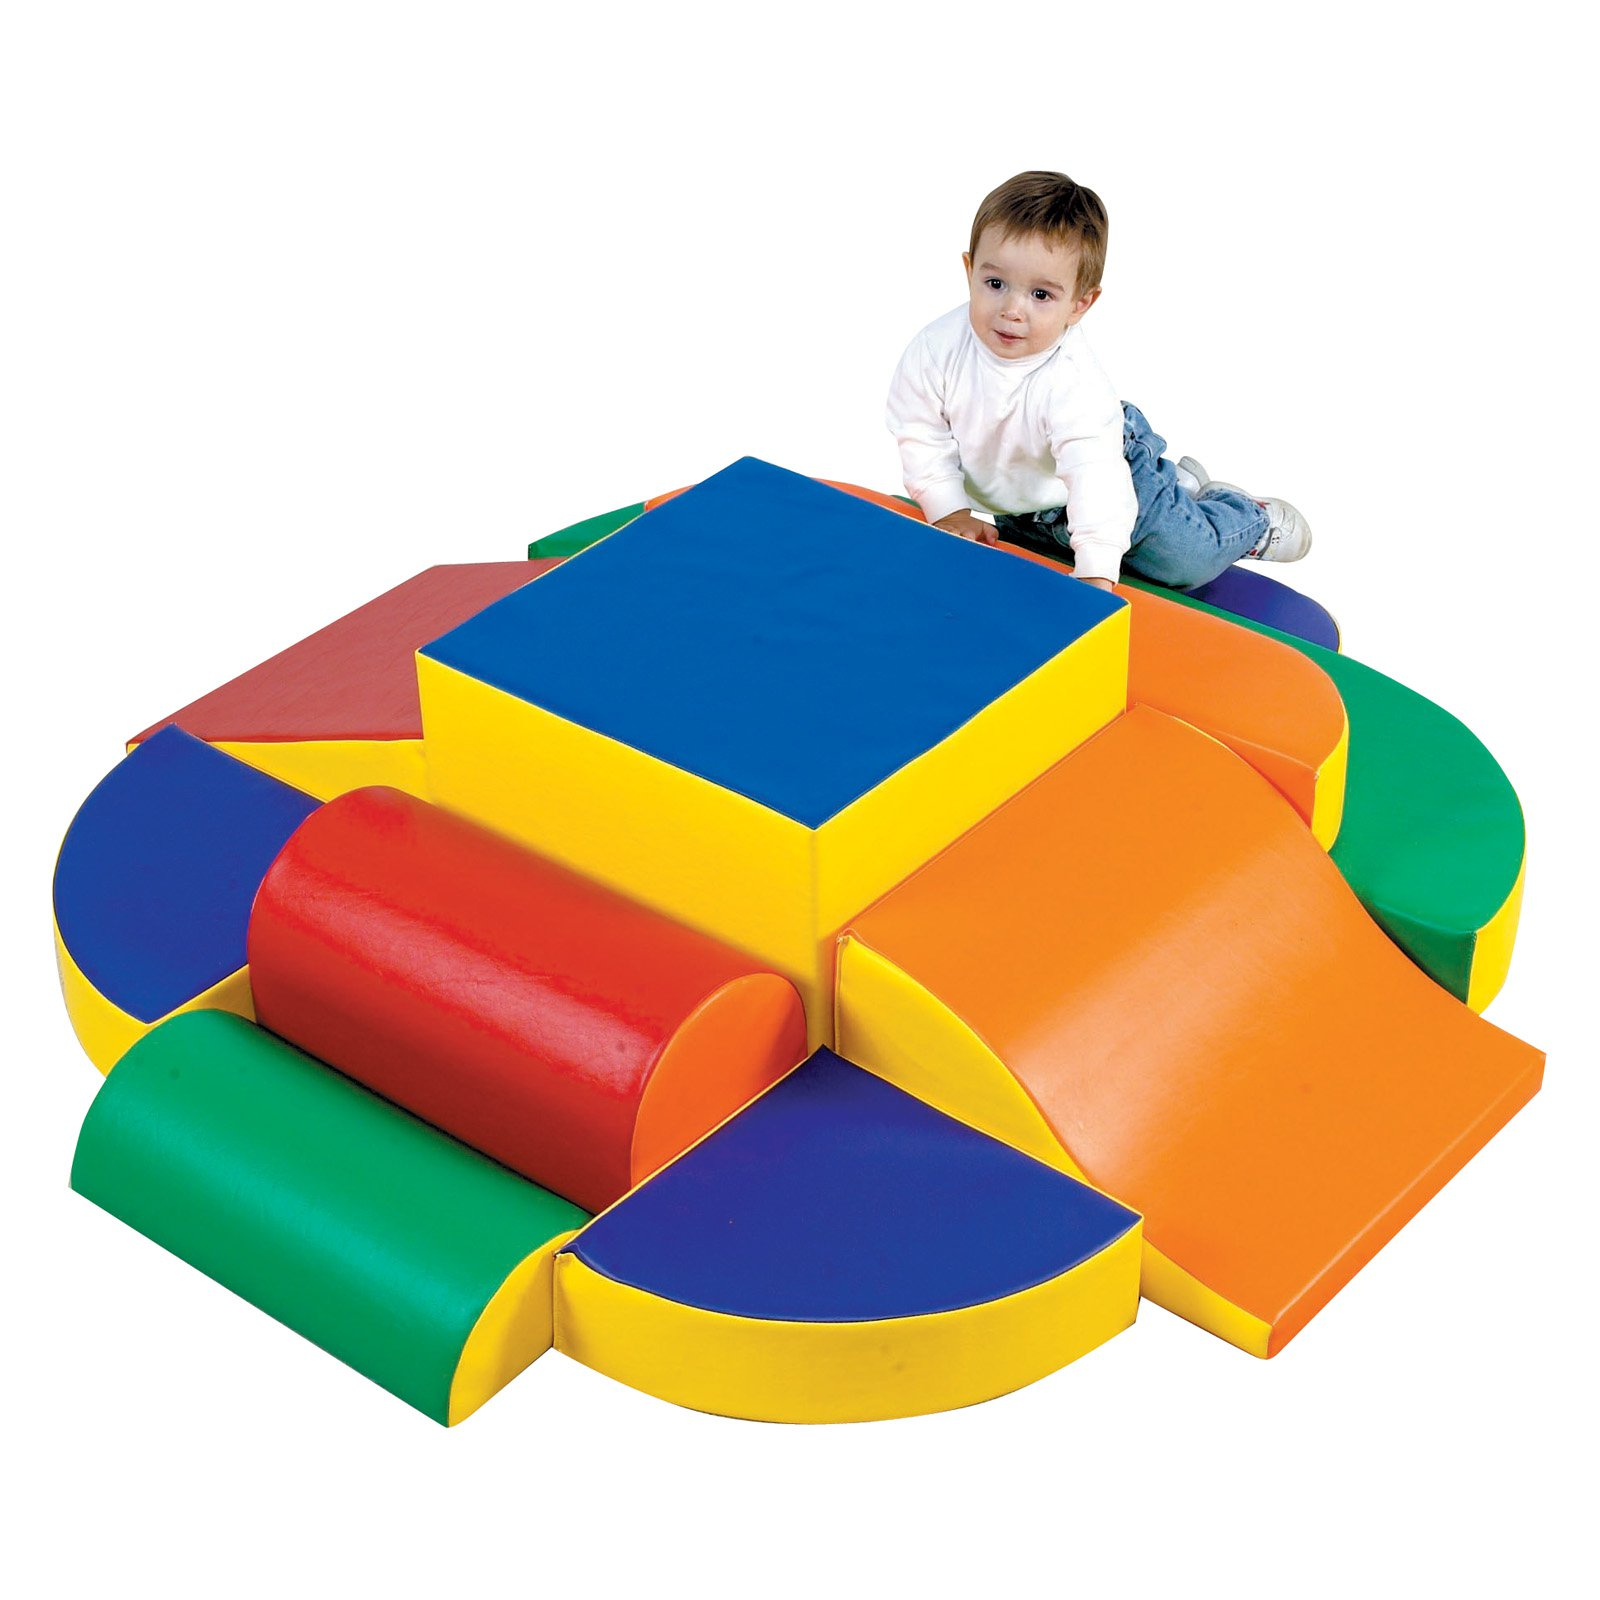 Children's Factory Playtime Island Climber